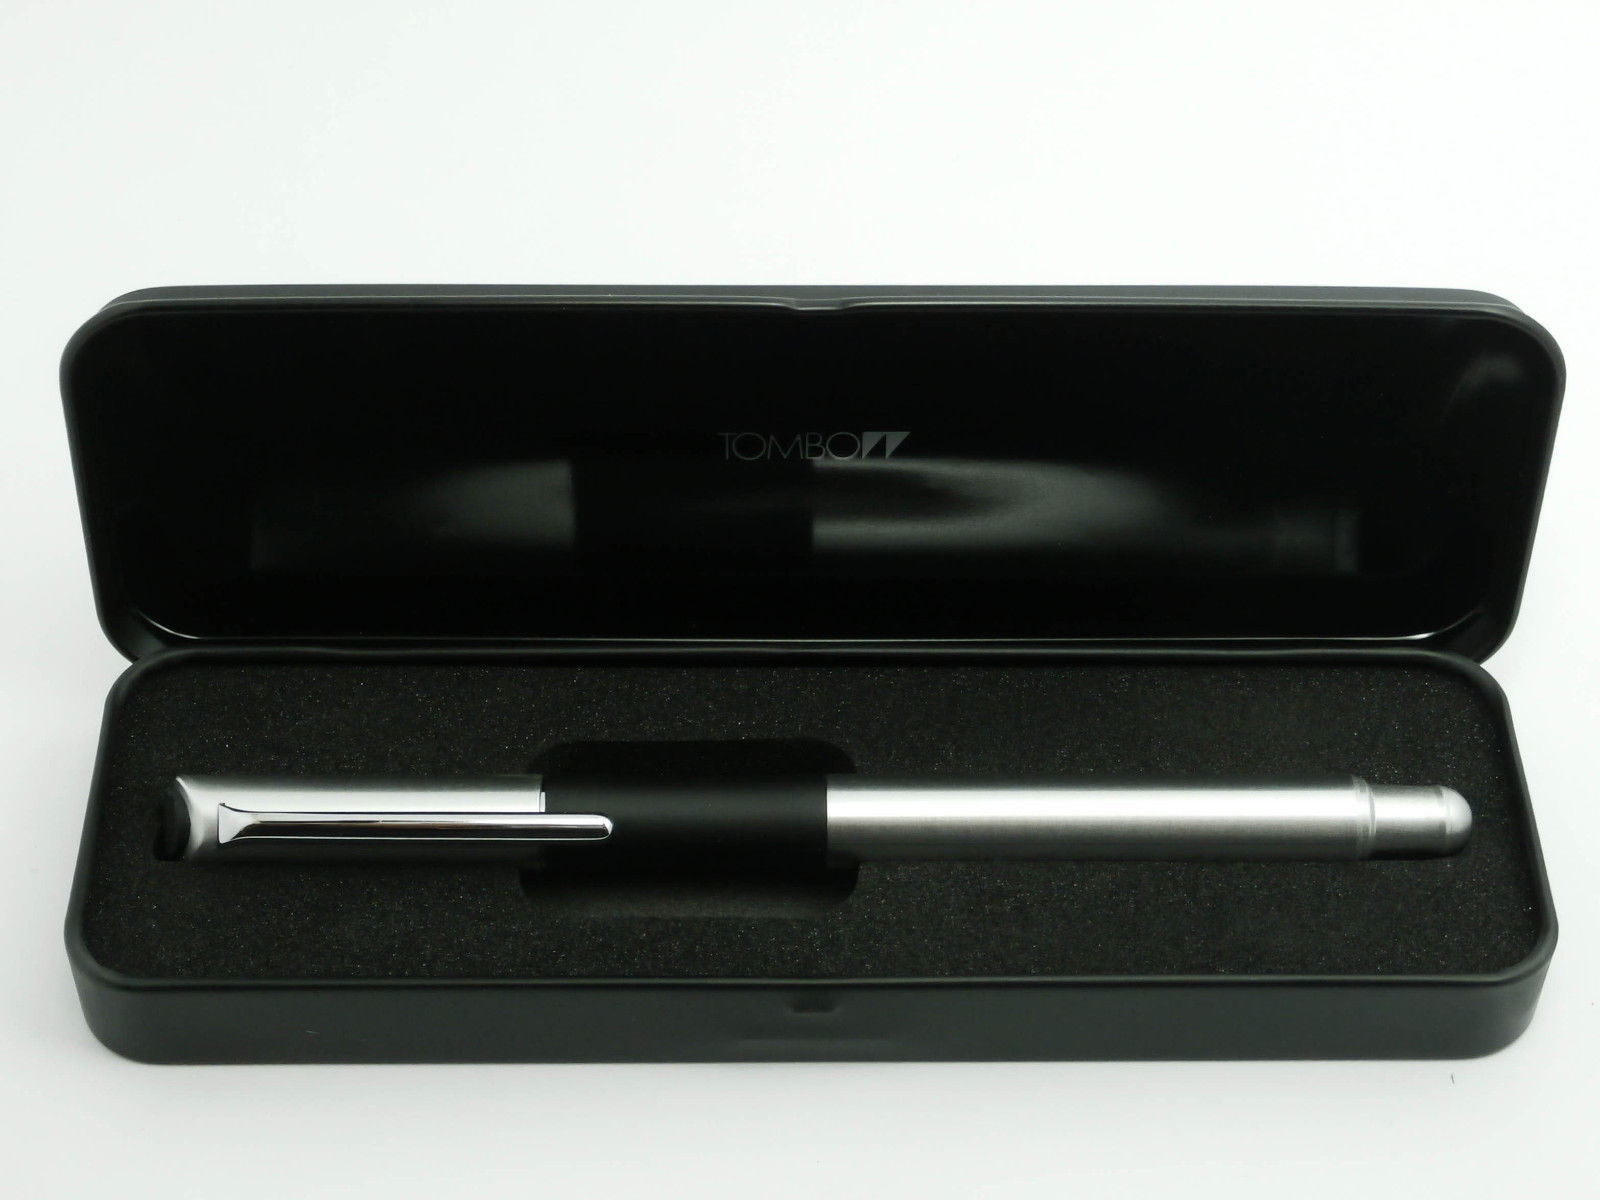 Tombow ESA Fountain pen + Gift Box, Made in Japan, Free shipping! image 9